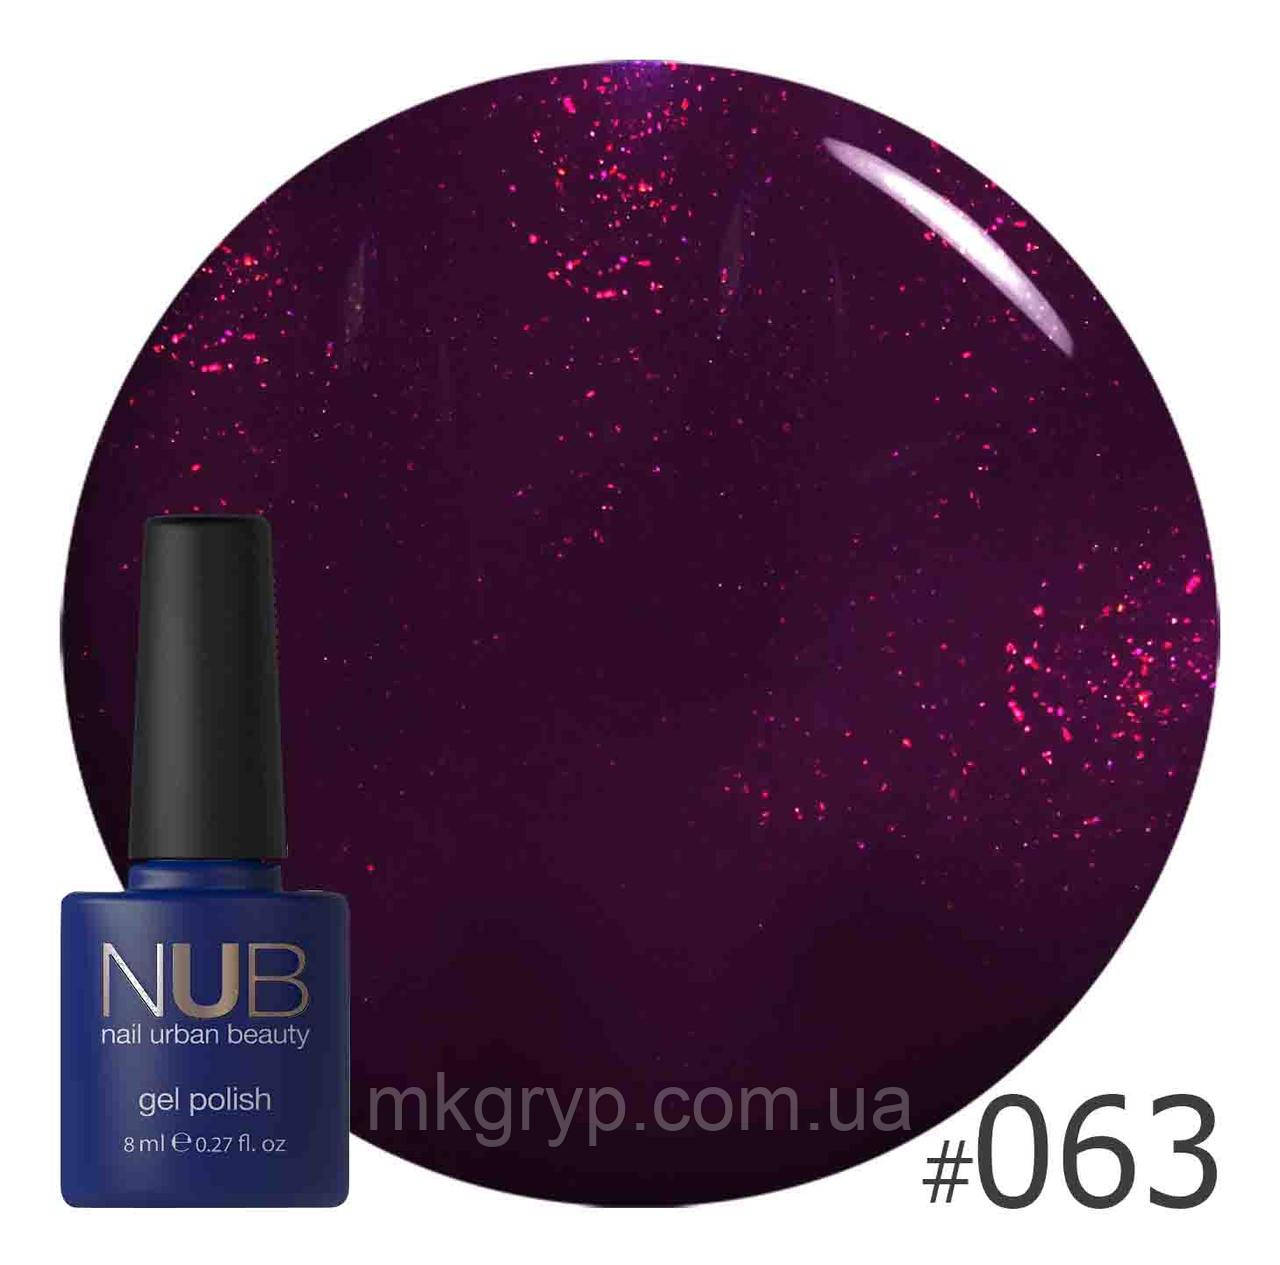 ГЕЛЬ-ЛАК NUB REBEL HEART 063